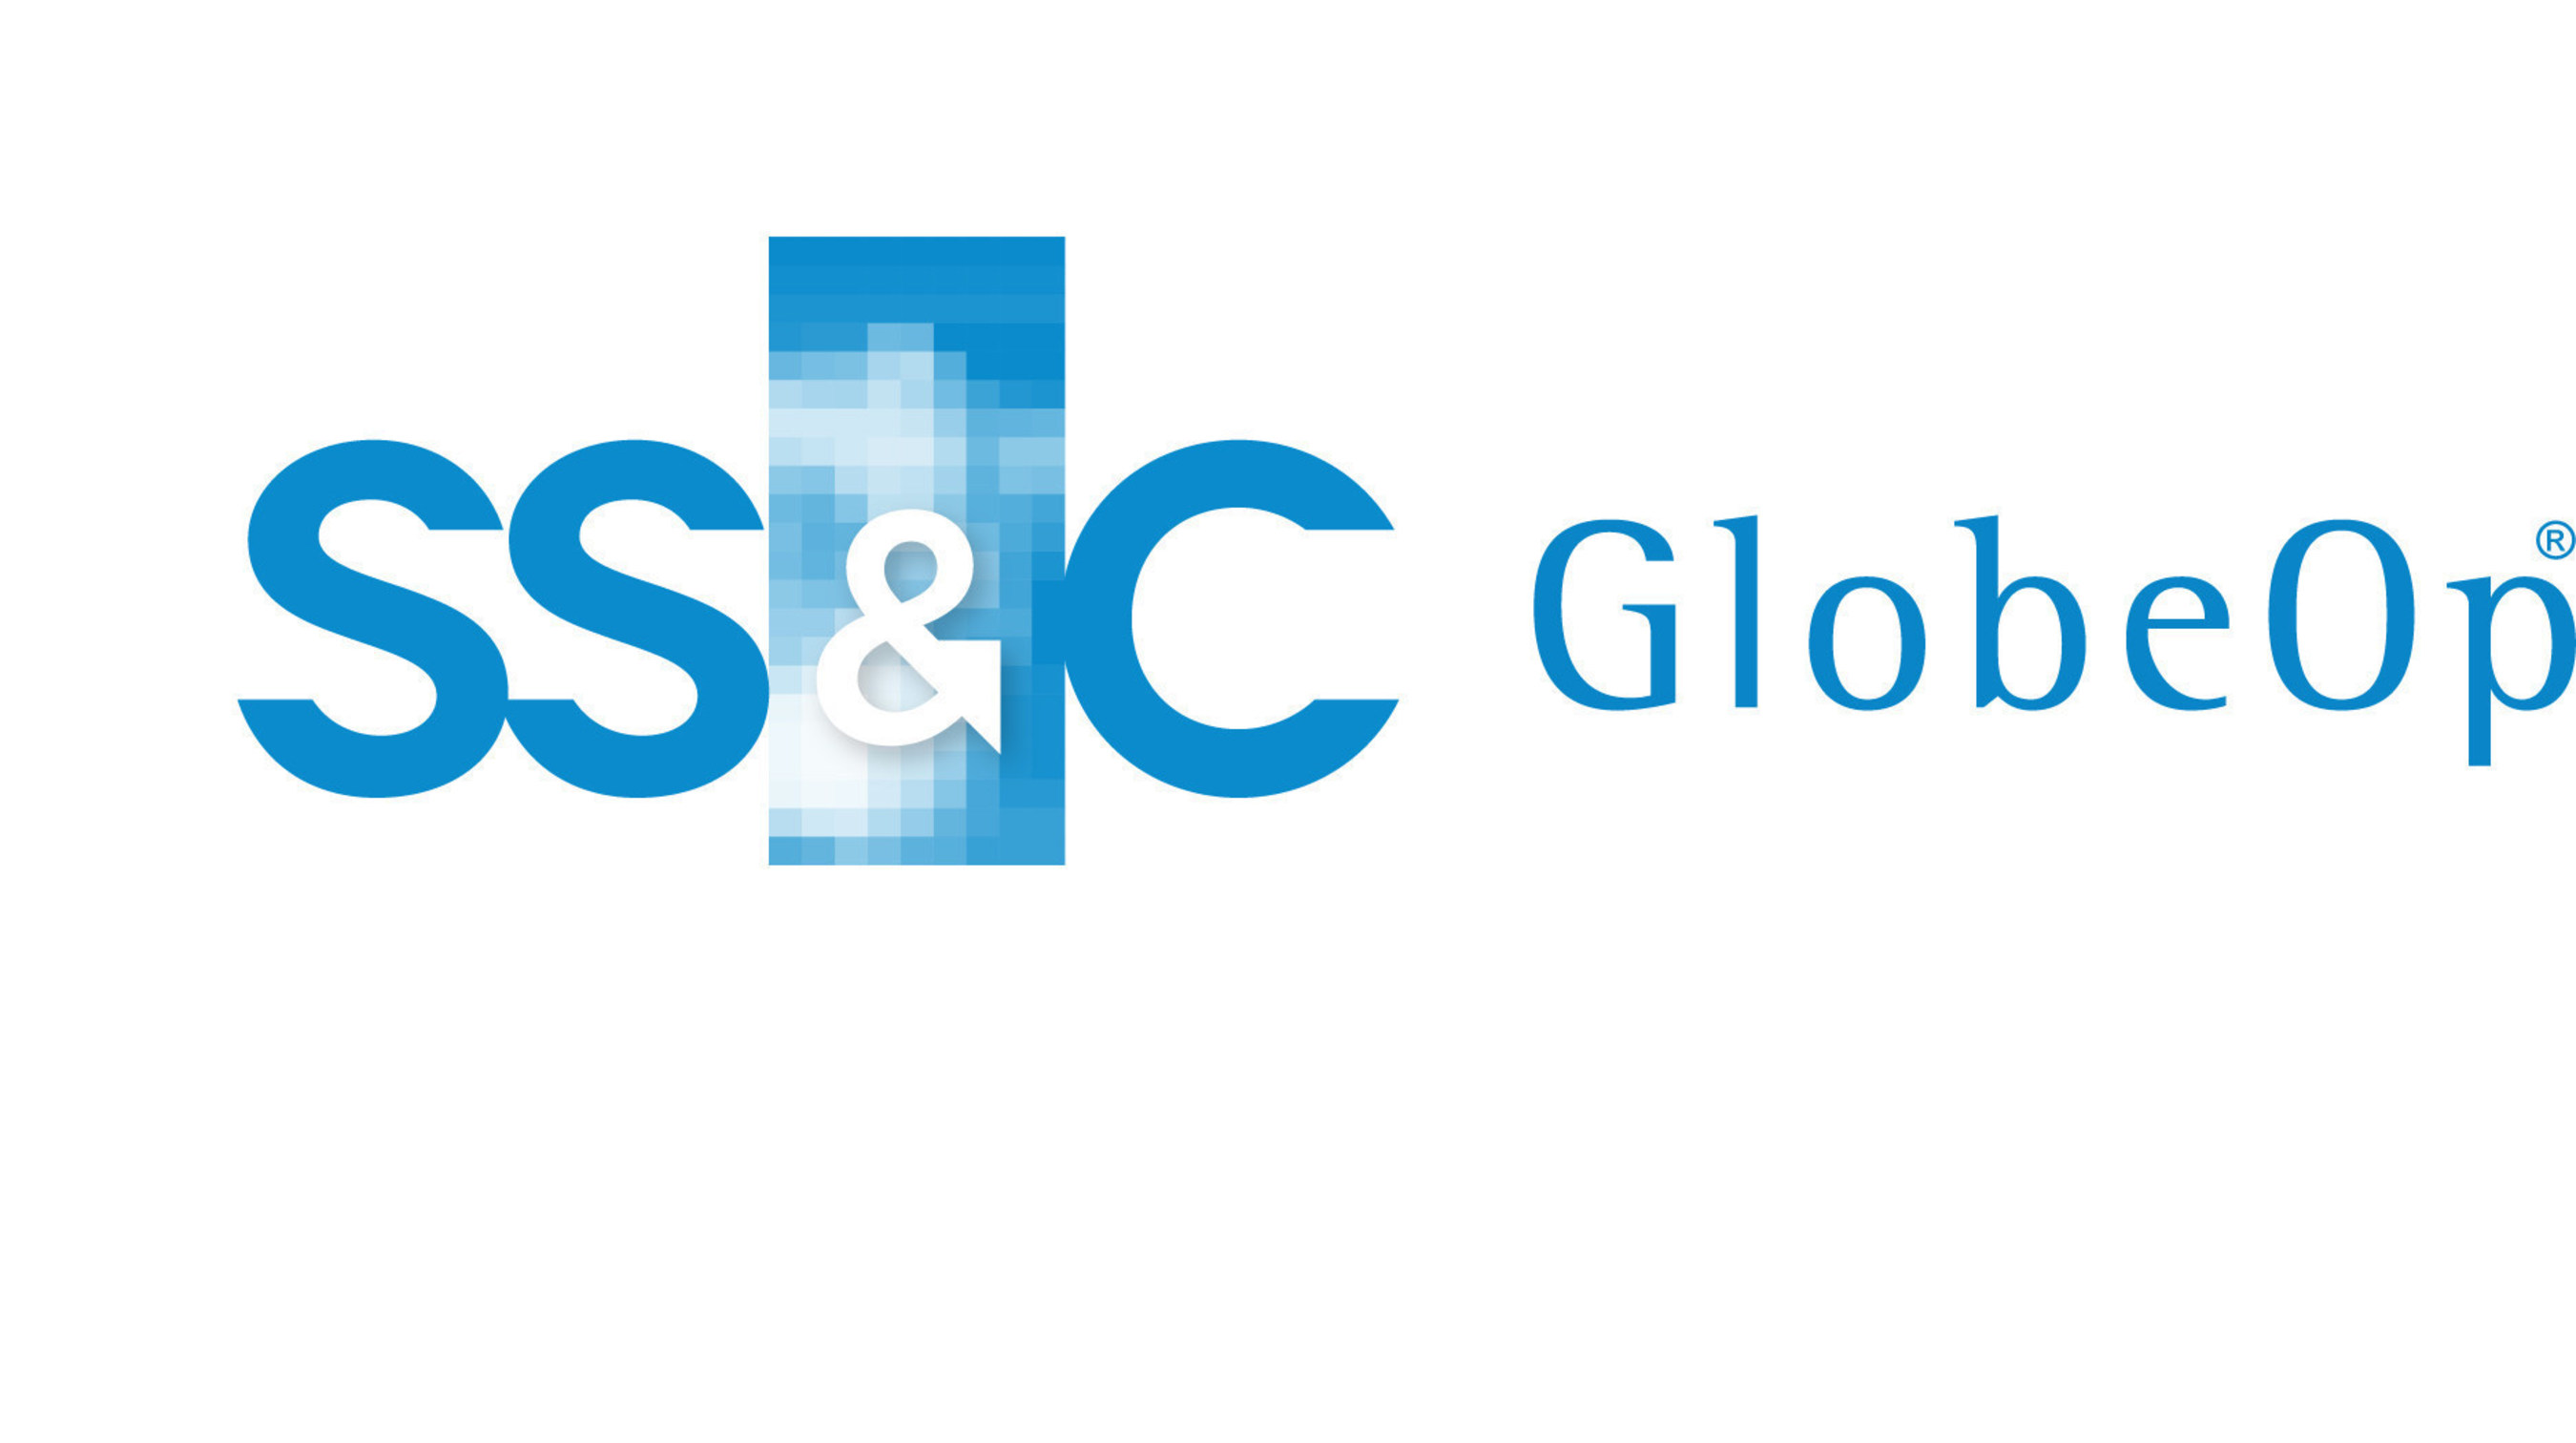 SS&C GlobeOp Hedge Fund Performance Index: April performance 0.34%; Capital Movement Index: May net flows advance 0.92%